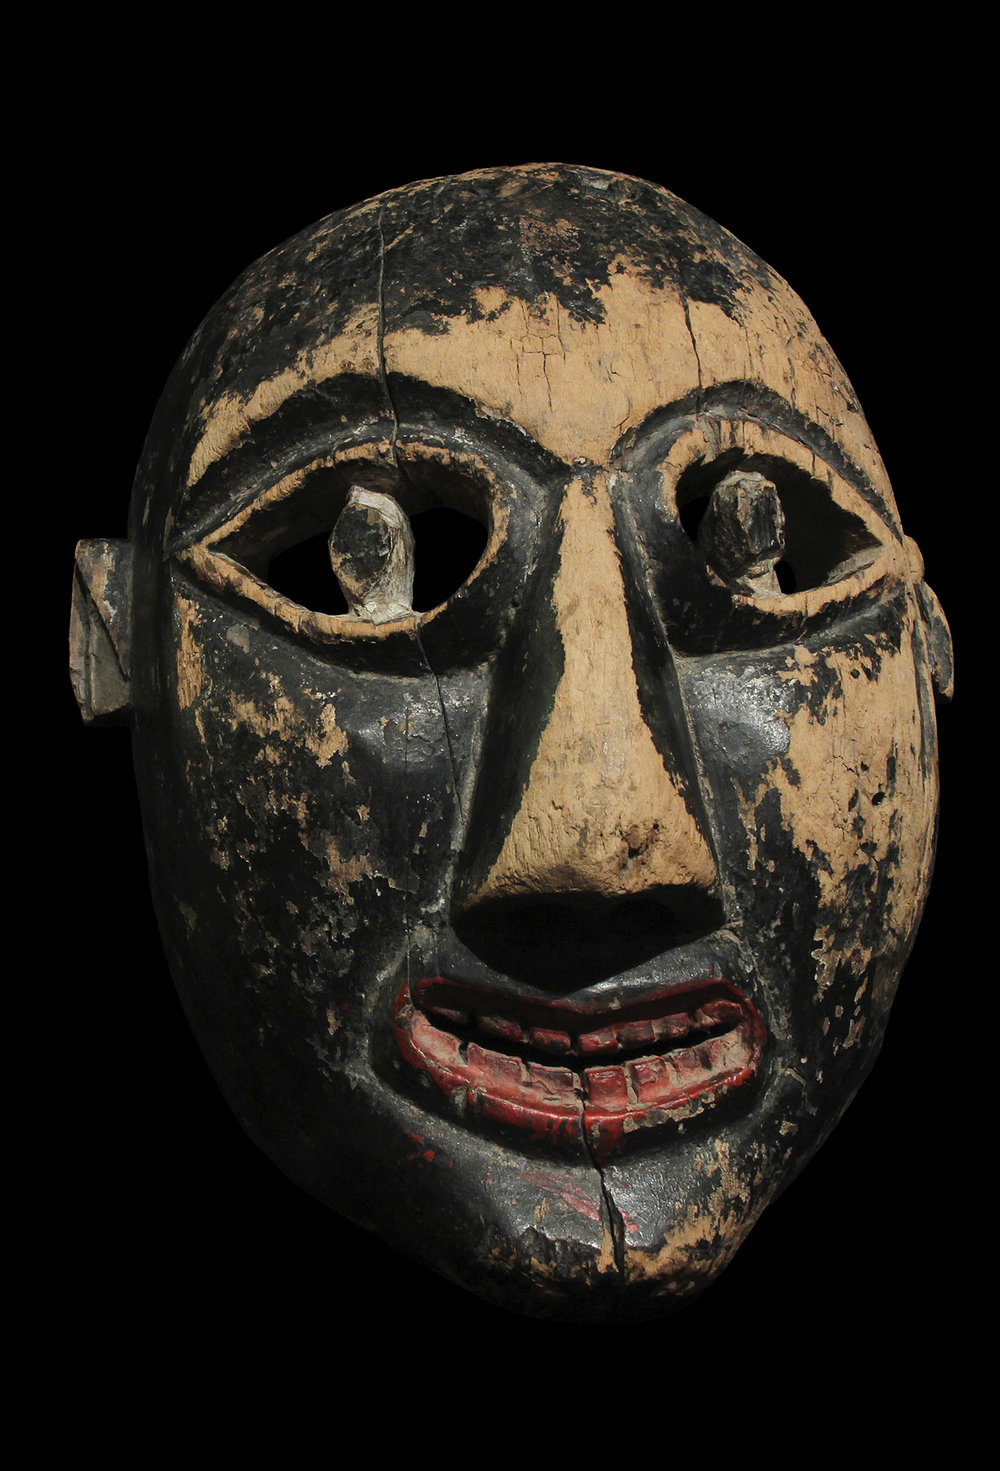 Iroquoian (Cherokee) Booger Mask, which portray and mock bad-mannered people. This early example was carved from eastern cedar (juniper) in the 18th Century. It was abandoned in Tennessee by its Cherokee owners on the Trail of Tears.